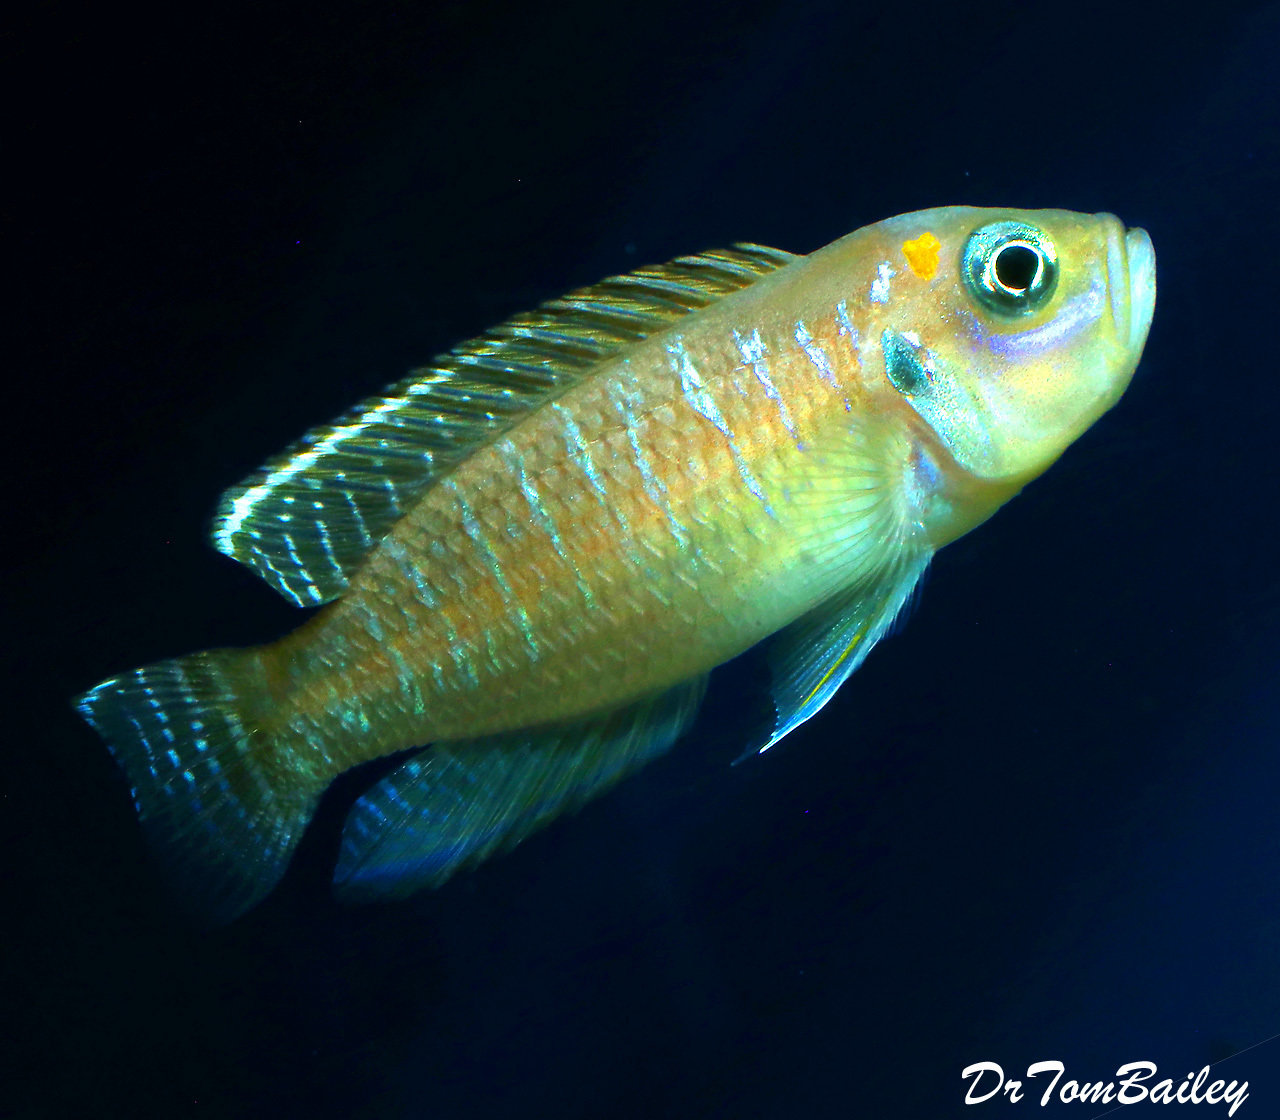 "Premium Rare, Brevis Shell Dwelling Cichllid from Kigoma on Lake Tanganyika Cichlid, 1"" to 1.2"" long"